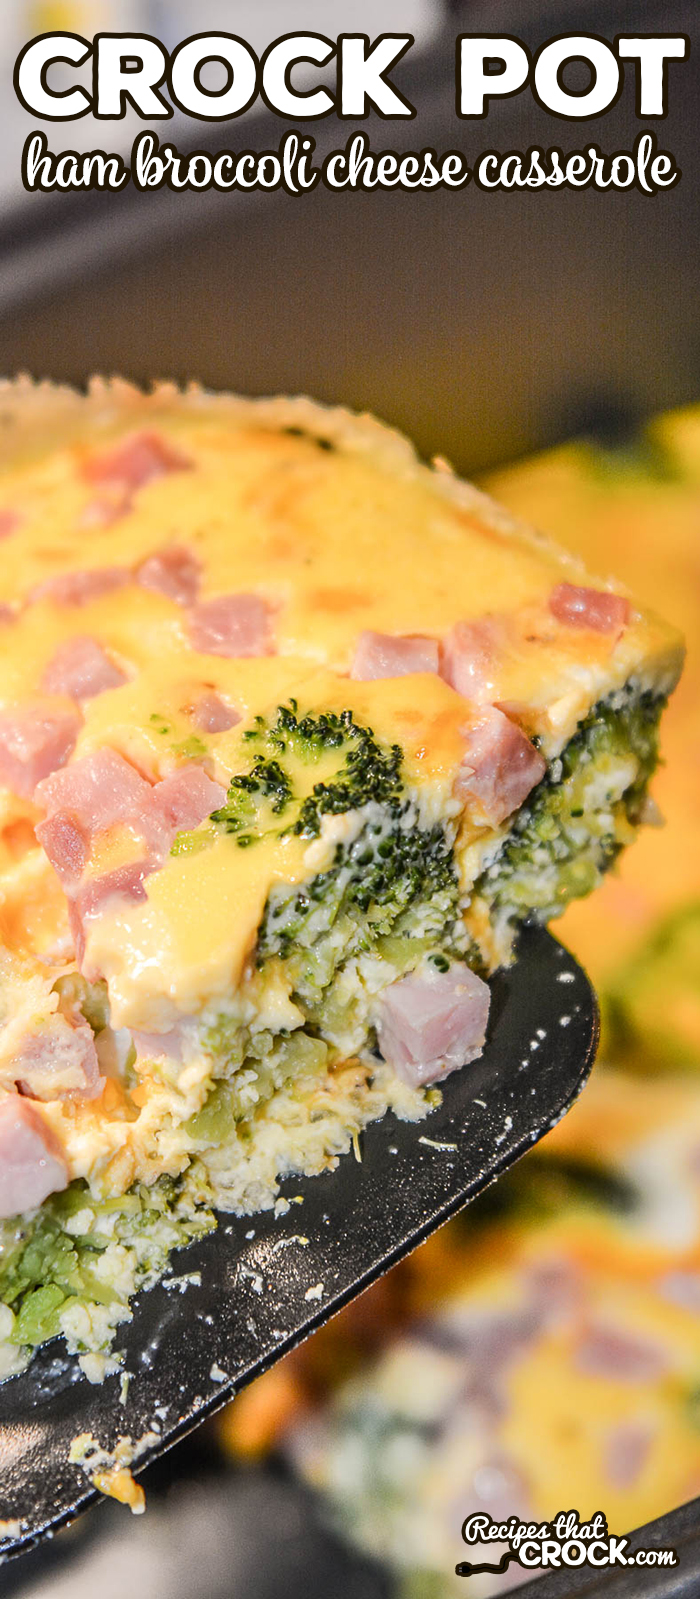 Are you looking for an easy breakfast casserole for the weekend or a holiday brunch? Our Crock Pot Ham Broccoli Cheese Casserole is super simple to toss together and makes a great family breakfast casserole. This egg casserole is a low carb breakfast recipe that carb lovers enjoy too! #LowCarb #Breakfast #BreakfastCasserole #Brunch #HolidayBrunch #EggCasserole